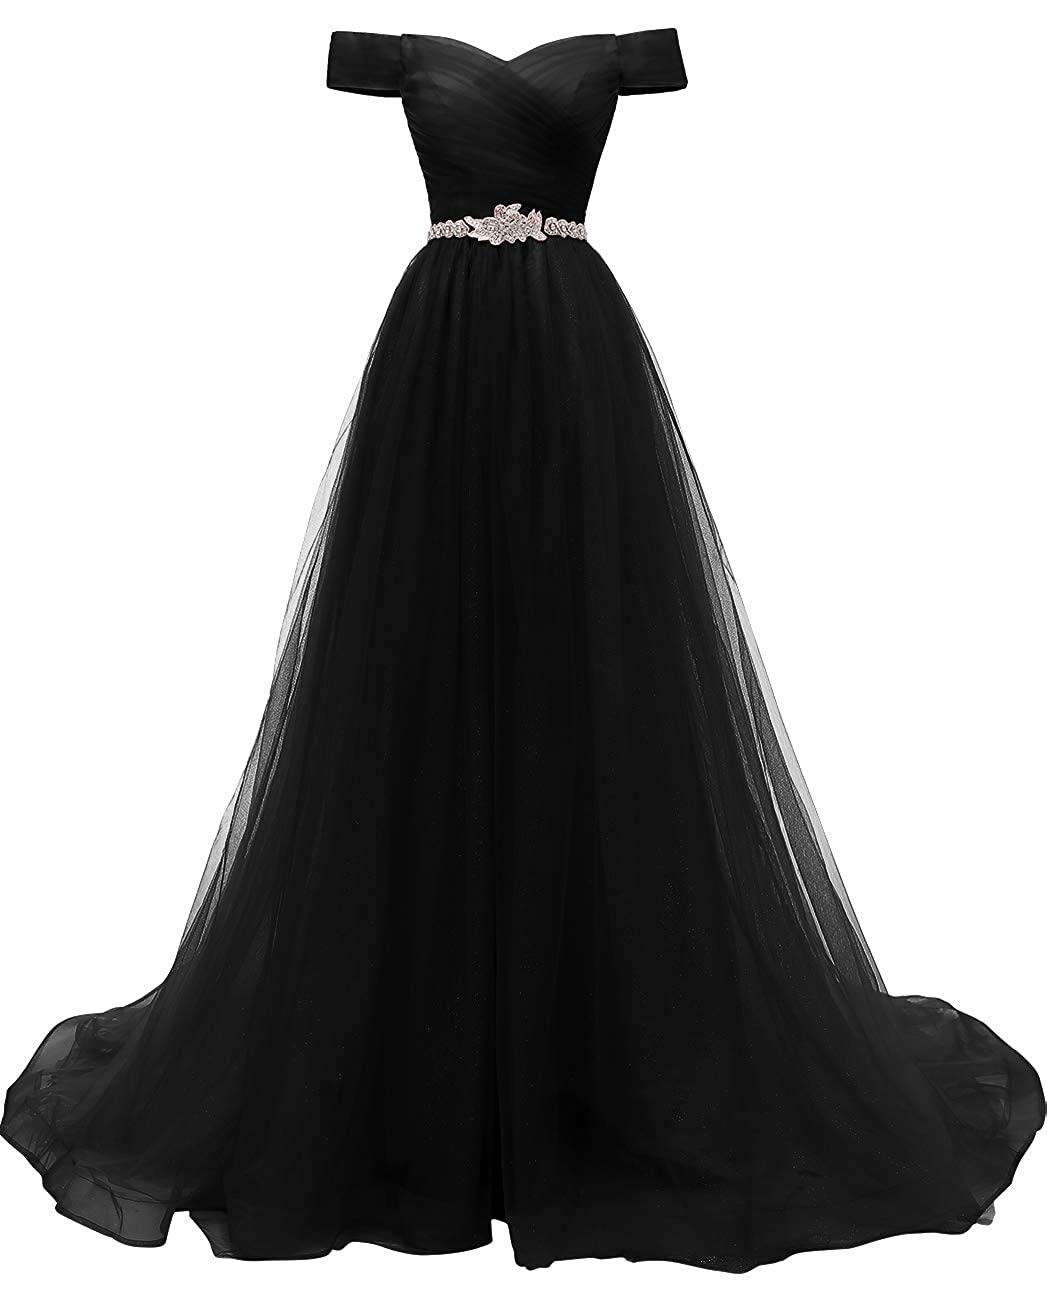 Black VKBRIDAL Women's Off Shoulder A Line Prom Dresses Long Beaded Princess Ball Gowns